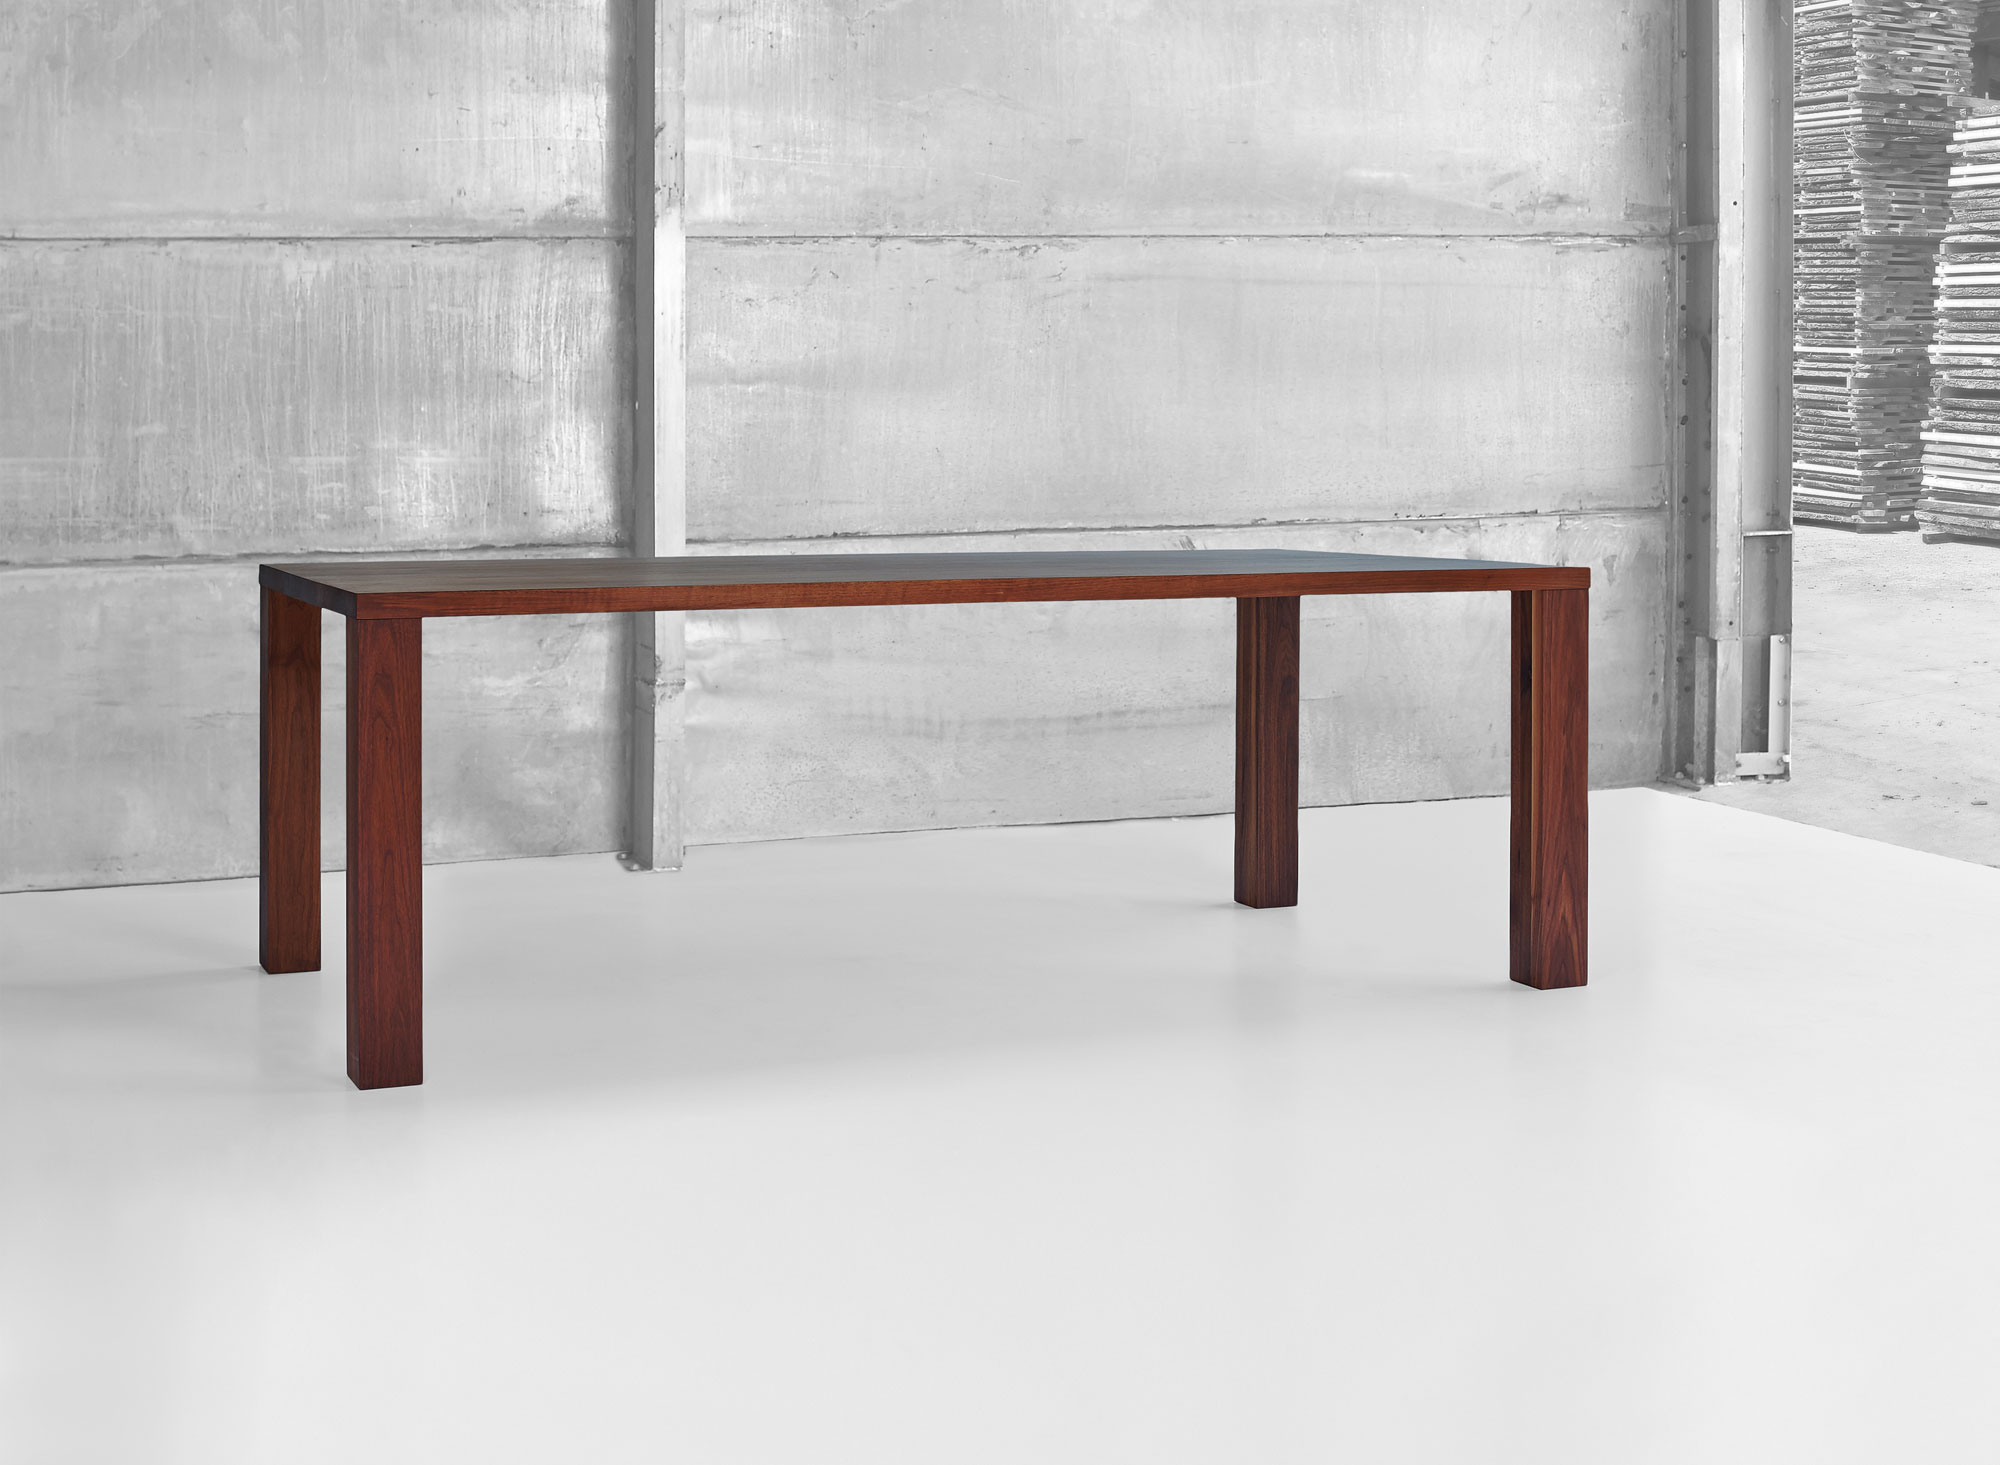 Frameless Solid Wood Table IUSTUS 0990pk custom made in solid wood by vitamin design